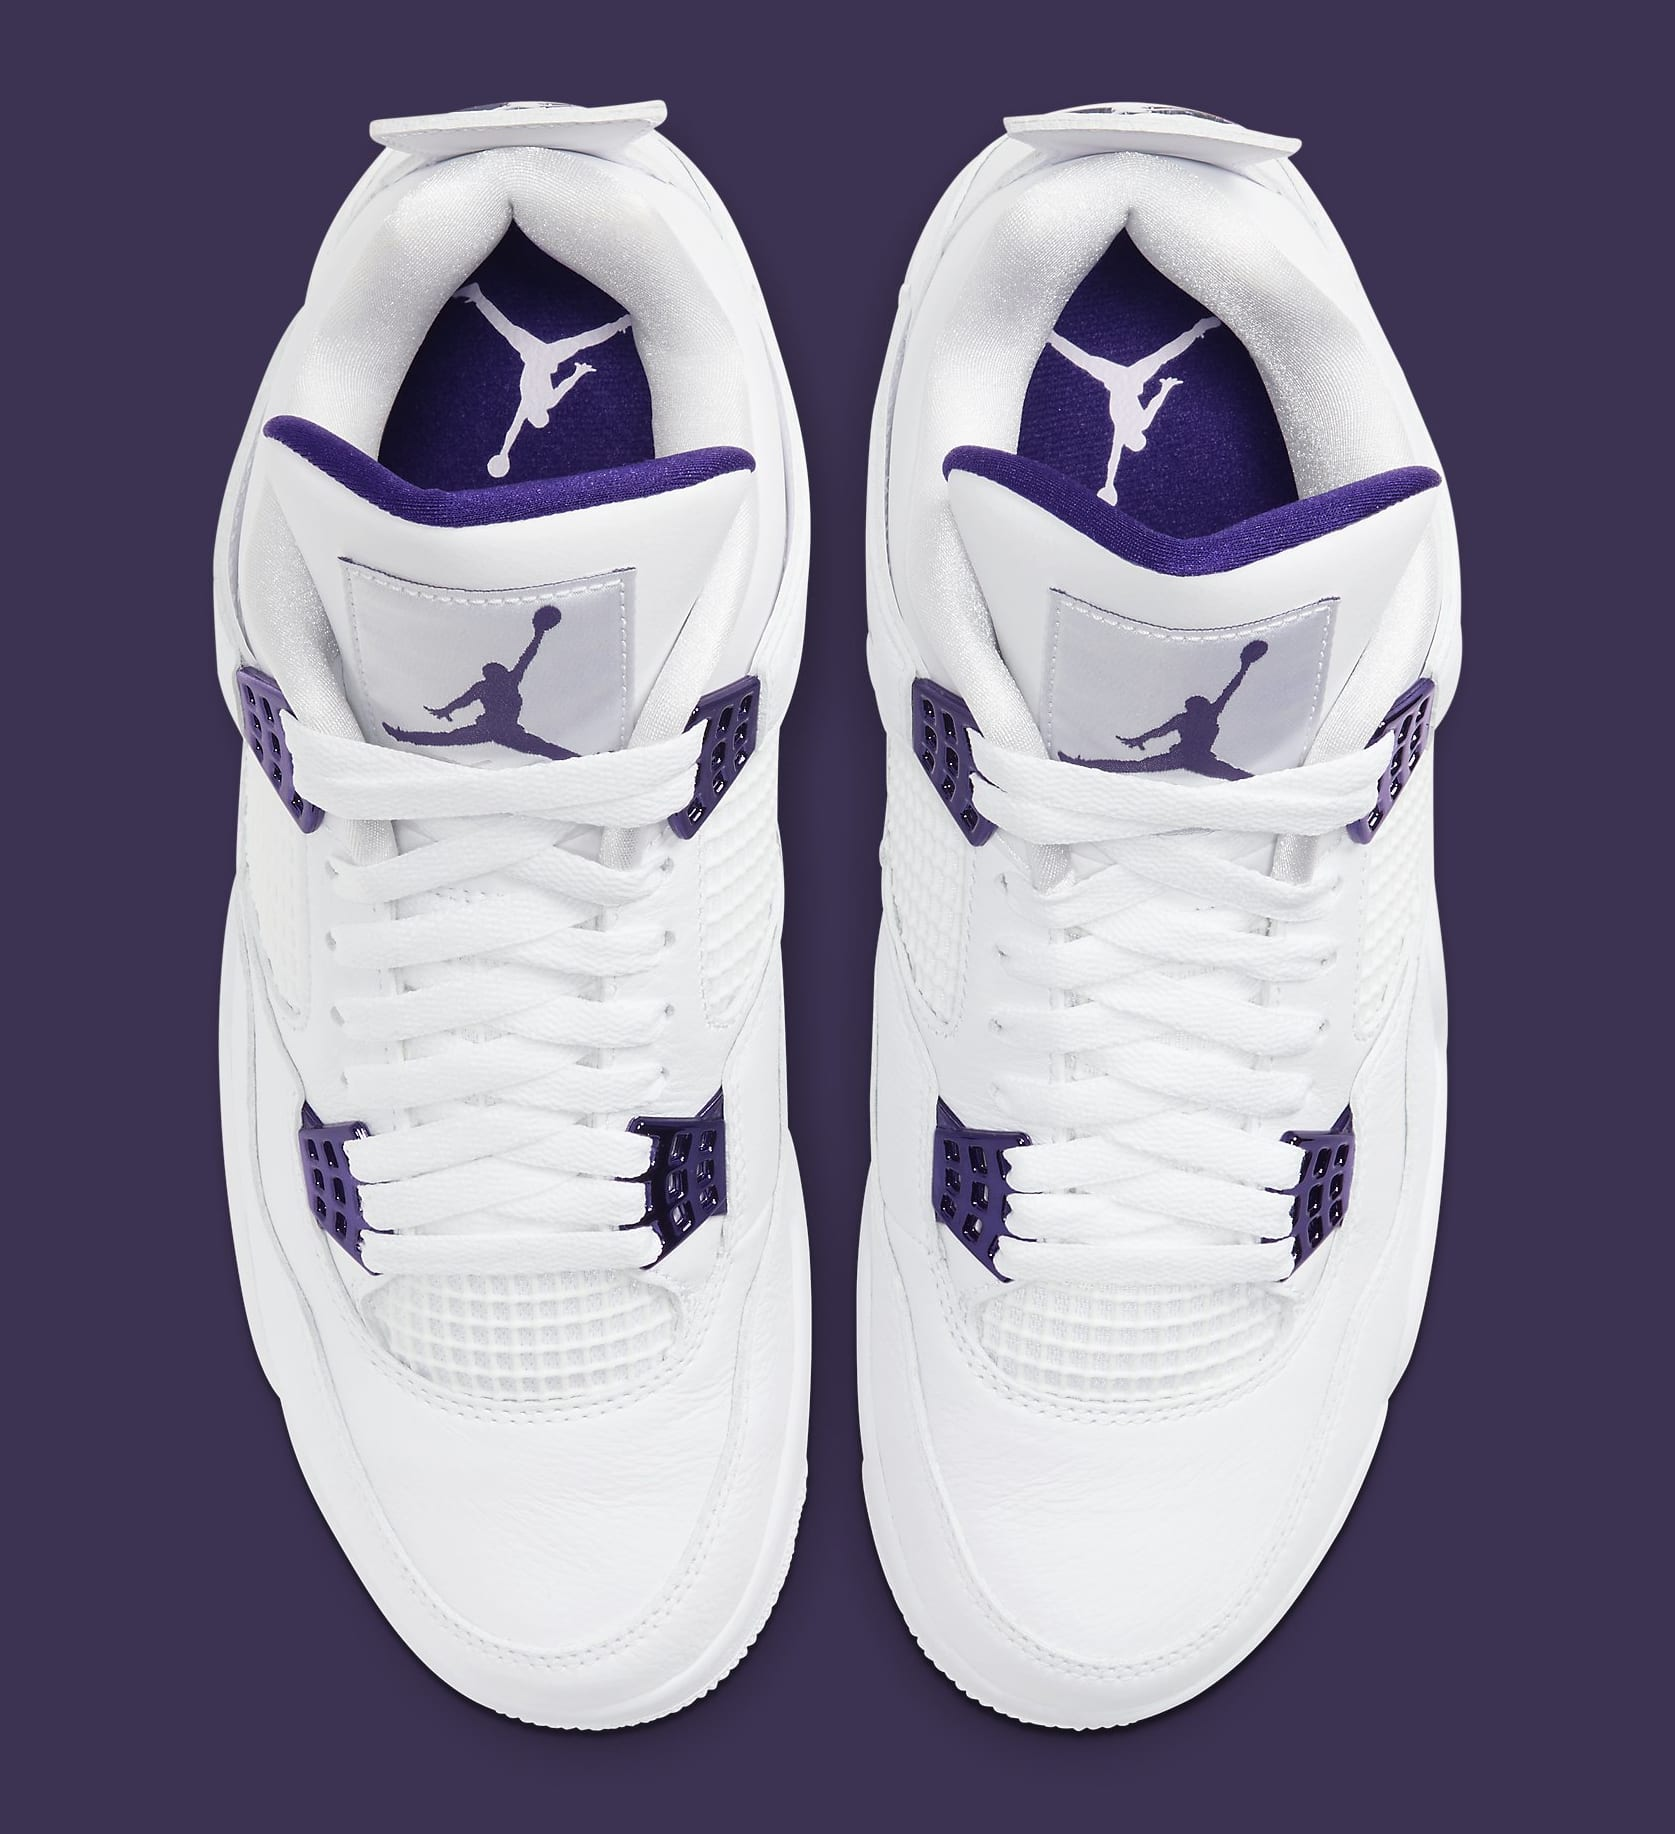 Air Jordan 4 Retro 'Metallic Purple' CT8527-115 Top